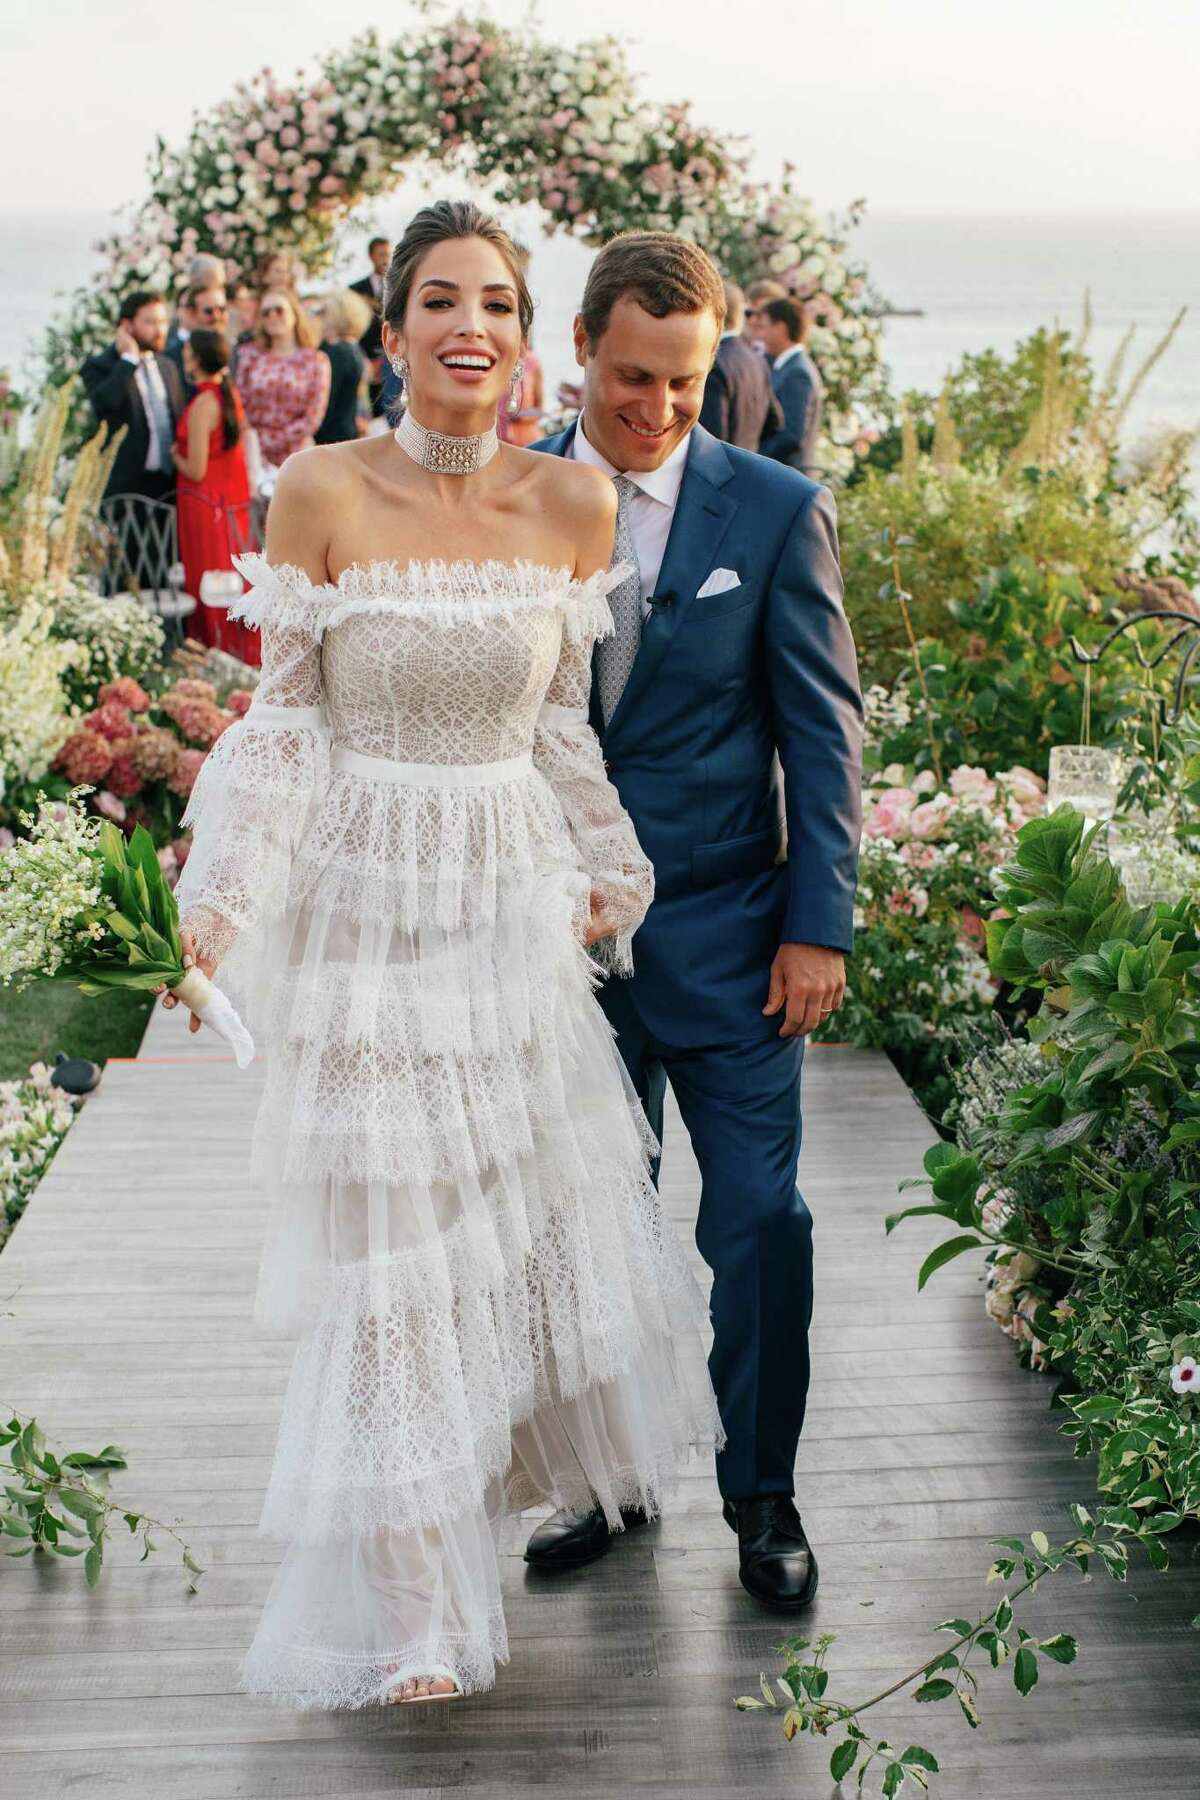 Lily Morris and Johnathan Schnitzer tie the knot at the bride's family home in San Clemente, Calif.